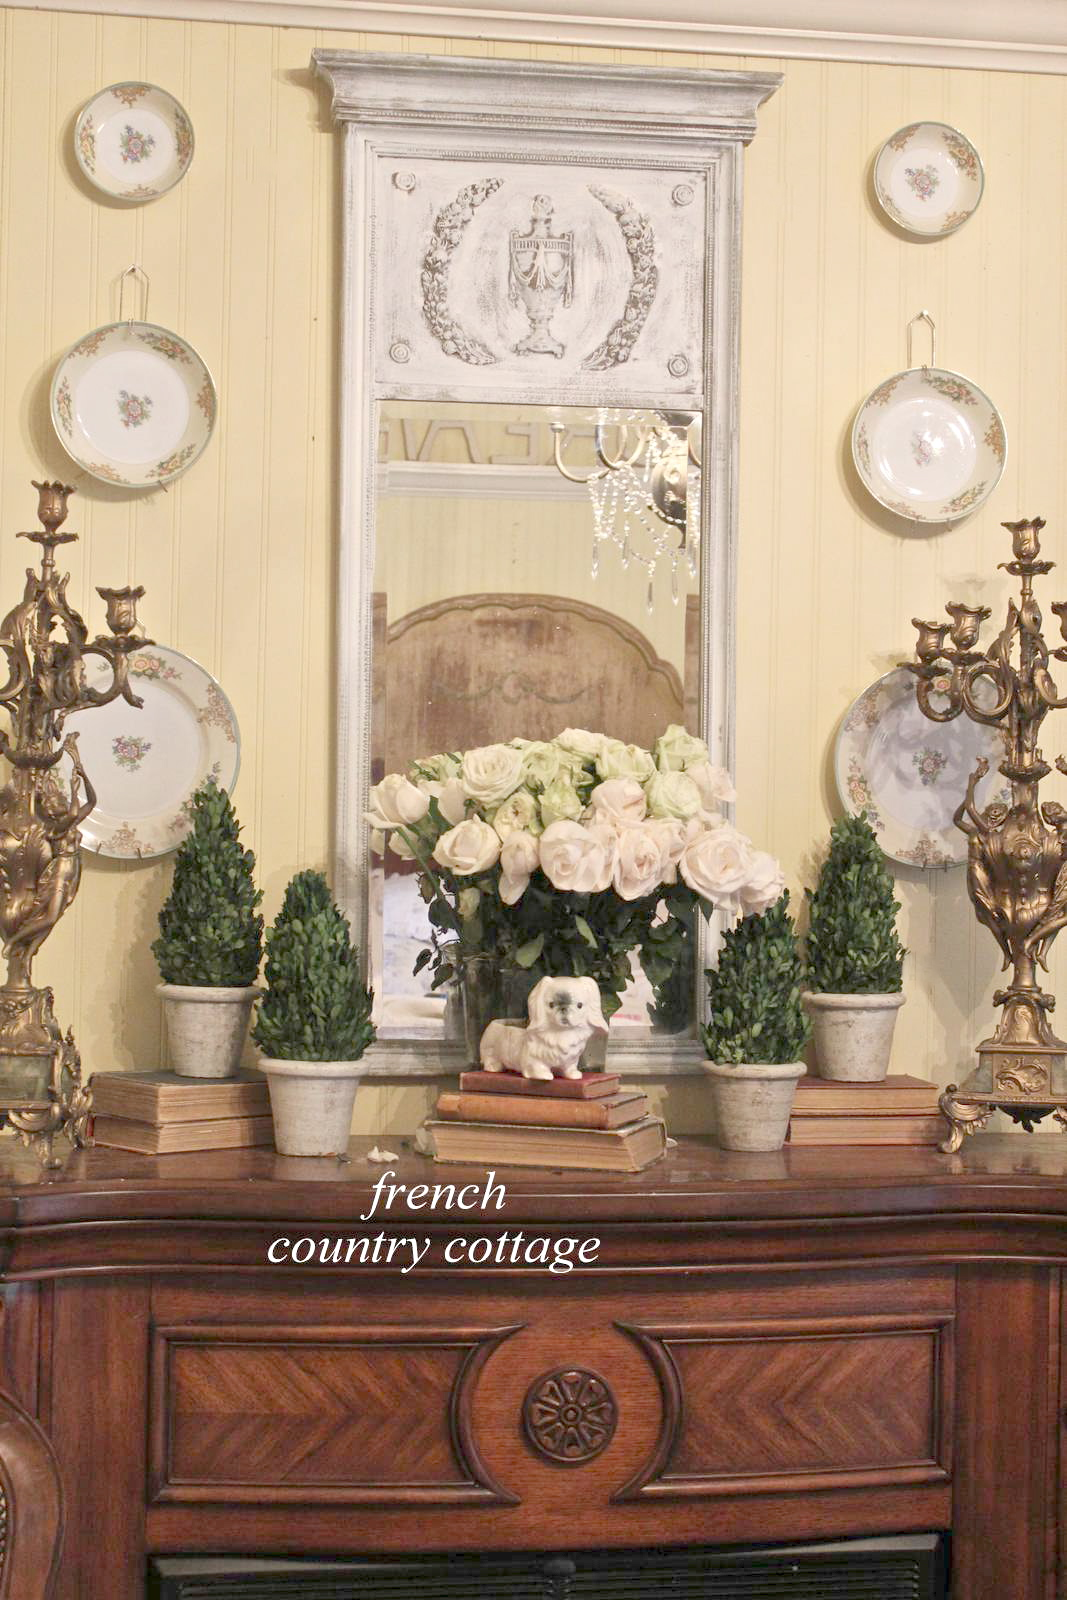 A fresh bedroom mantel french country cottage for French country cottages